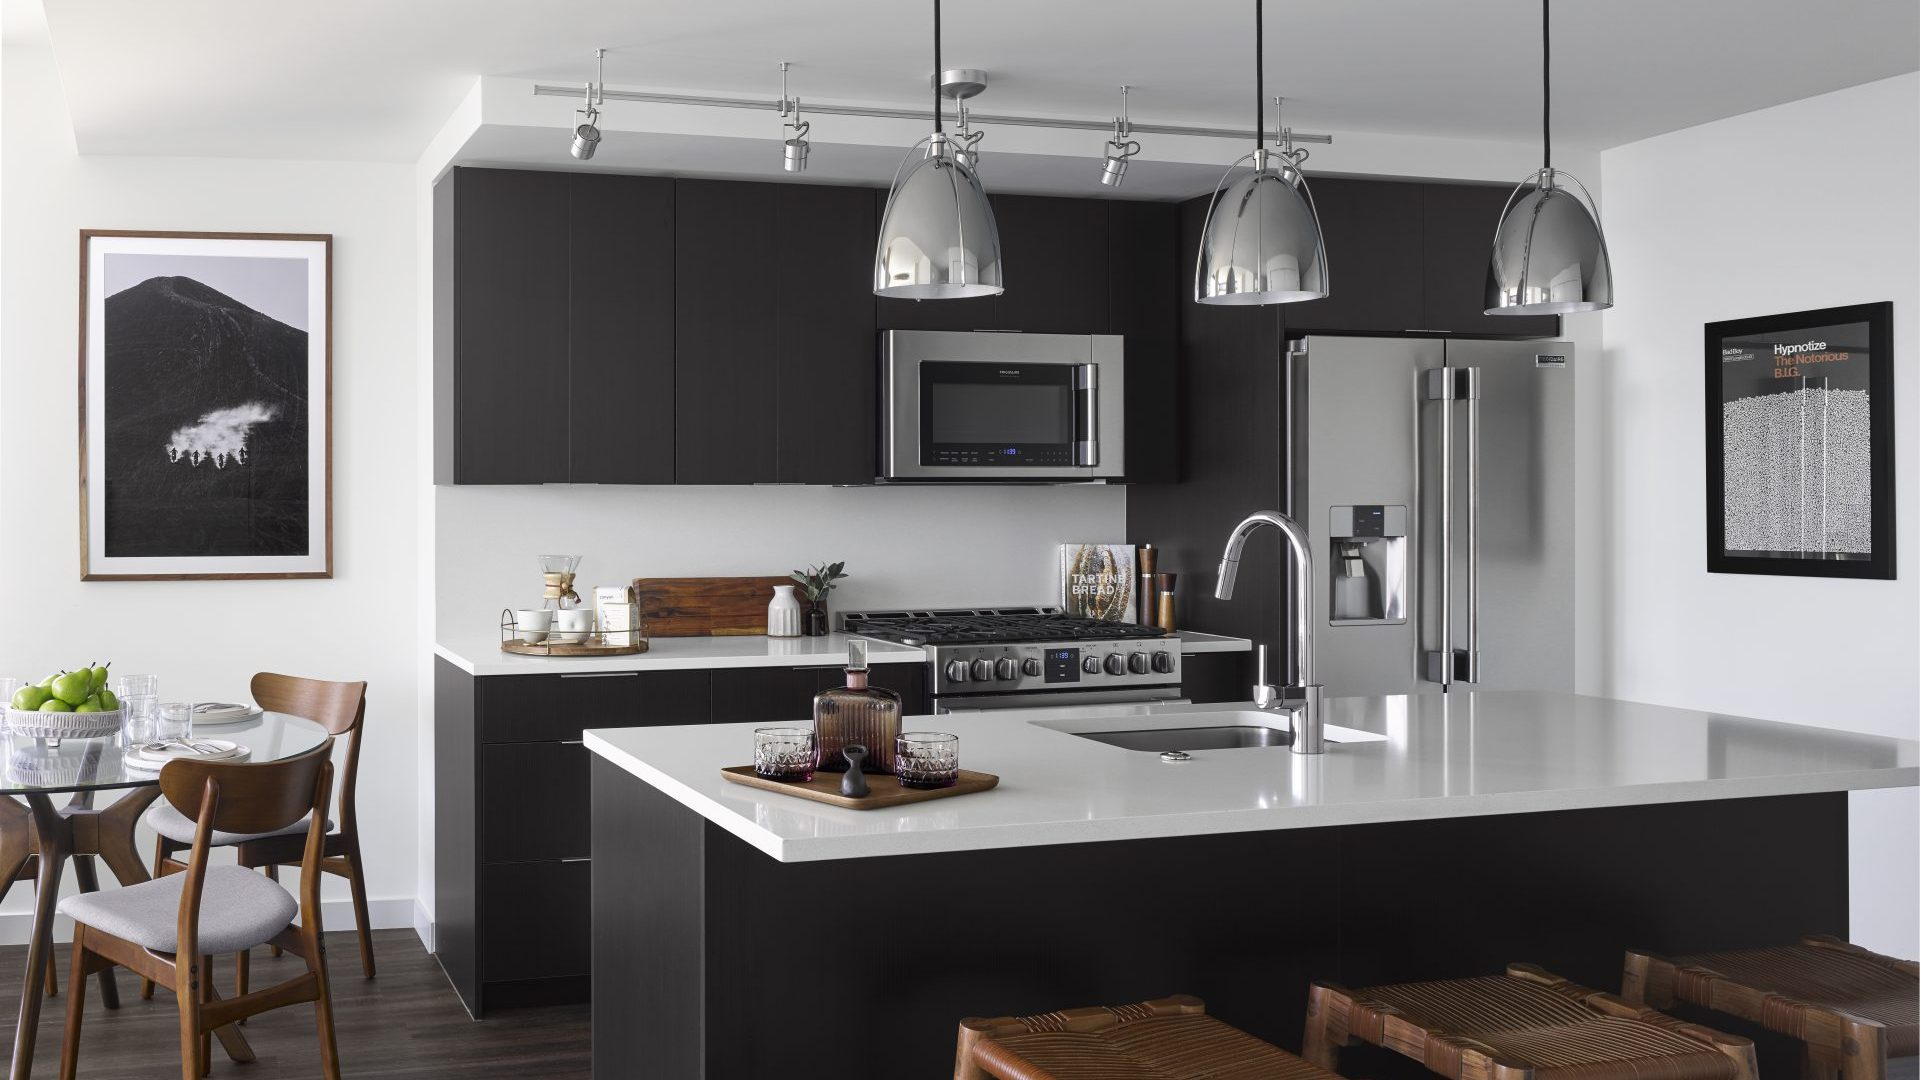 Modern Kitchens At Arrivé Apartments in Seattle, WA